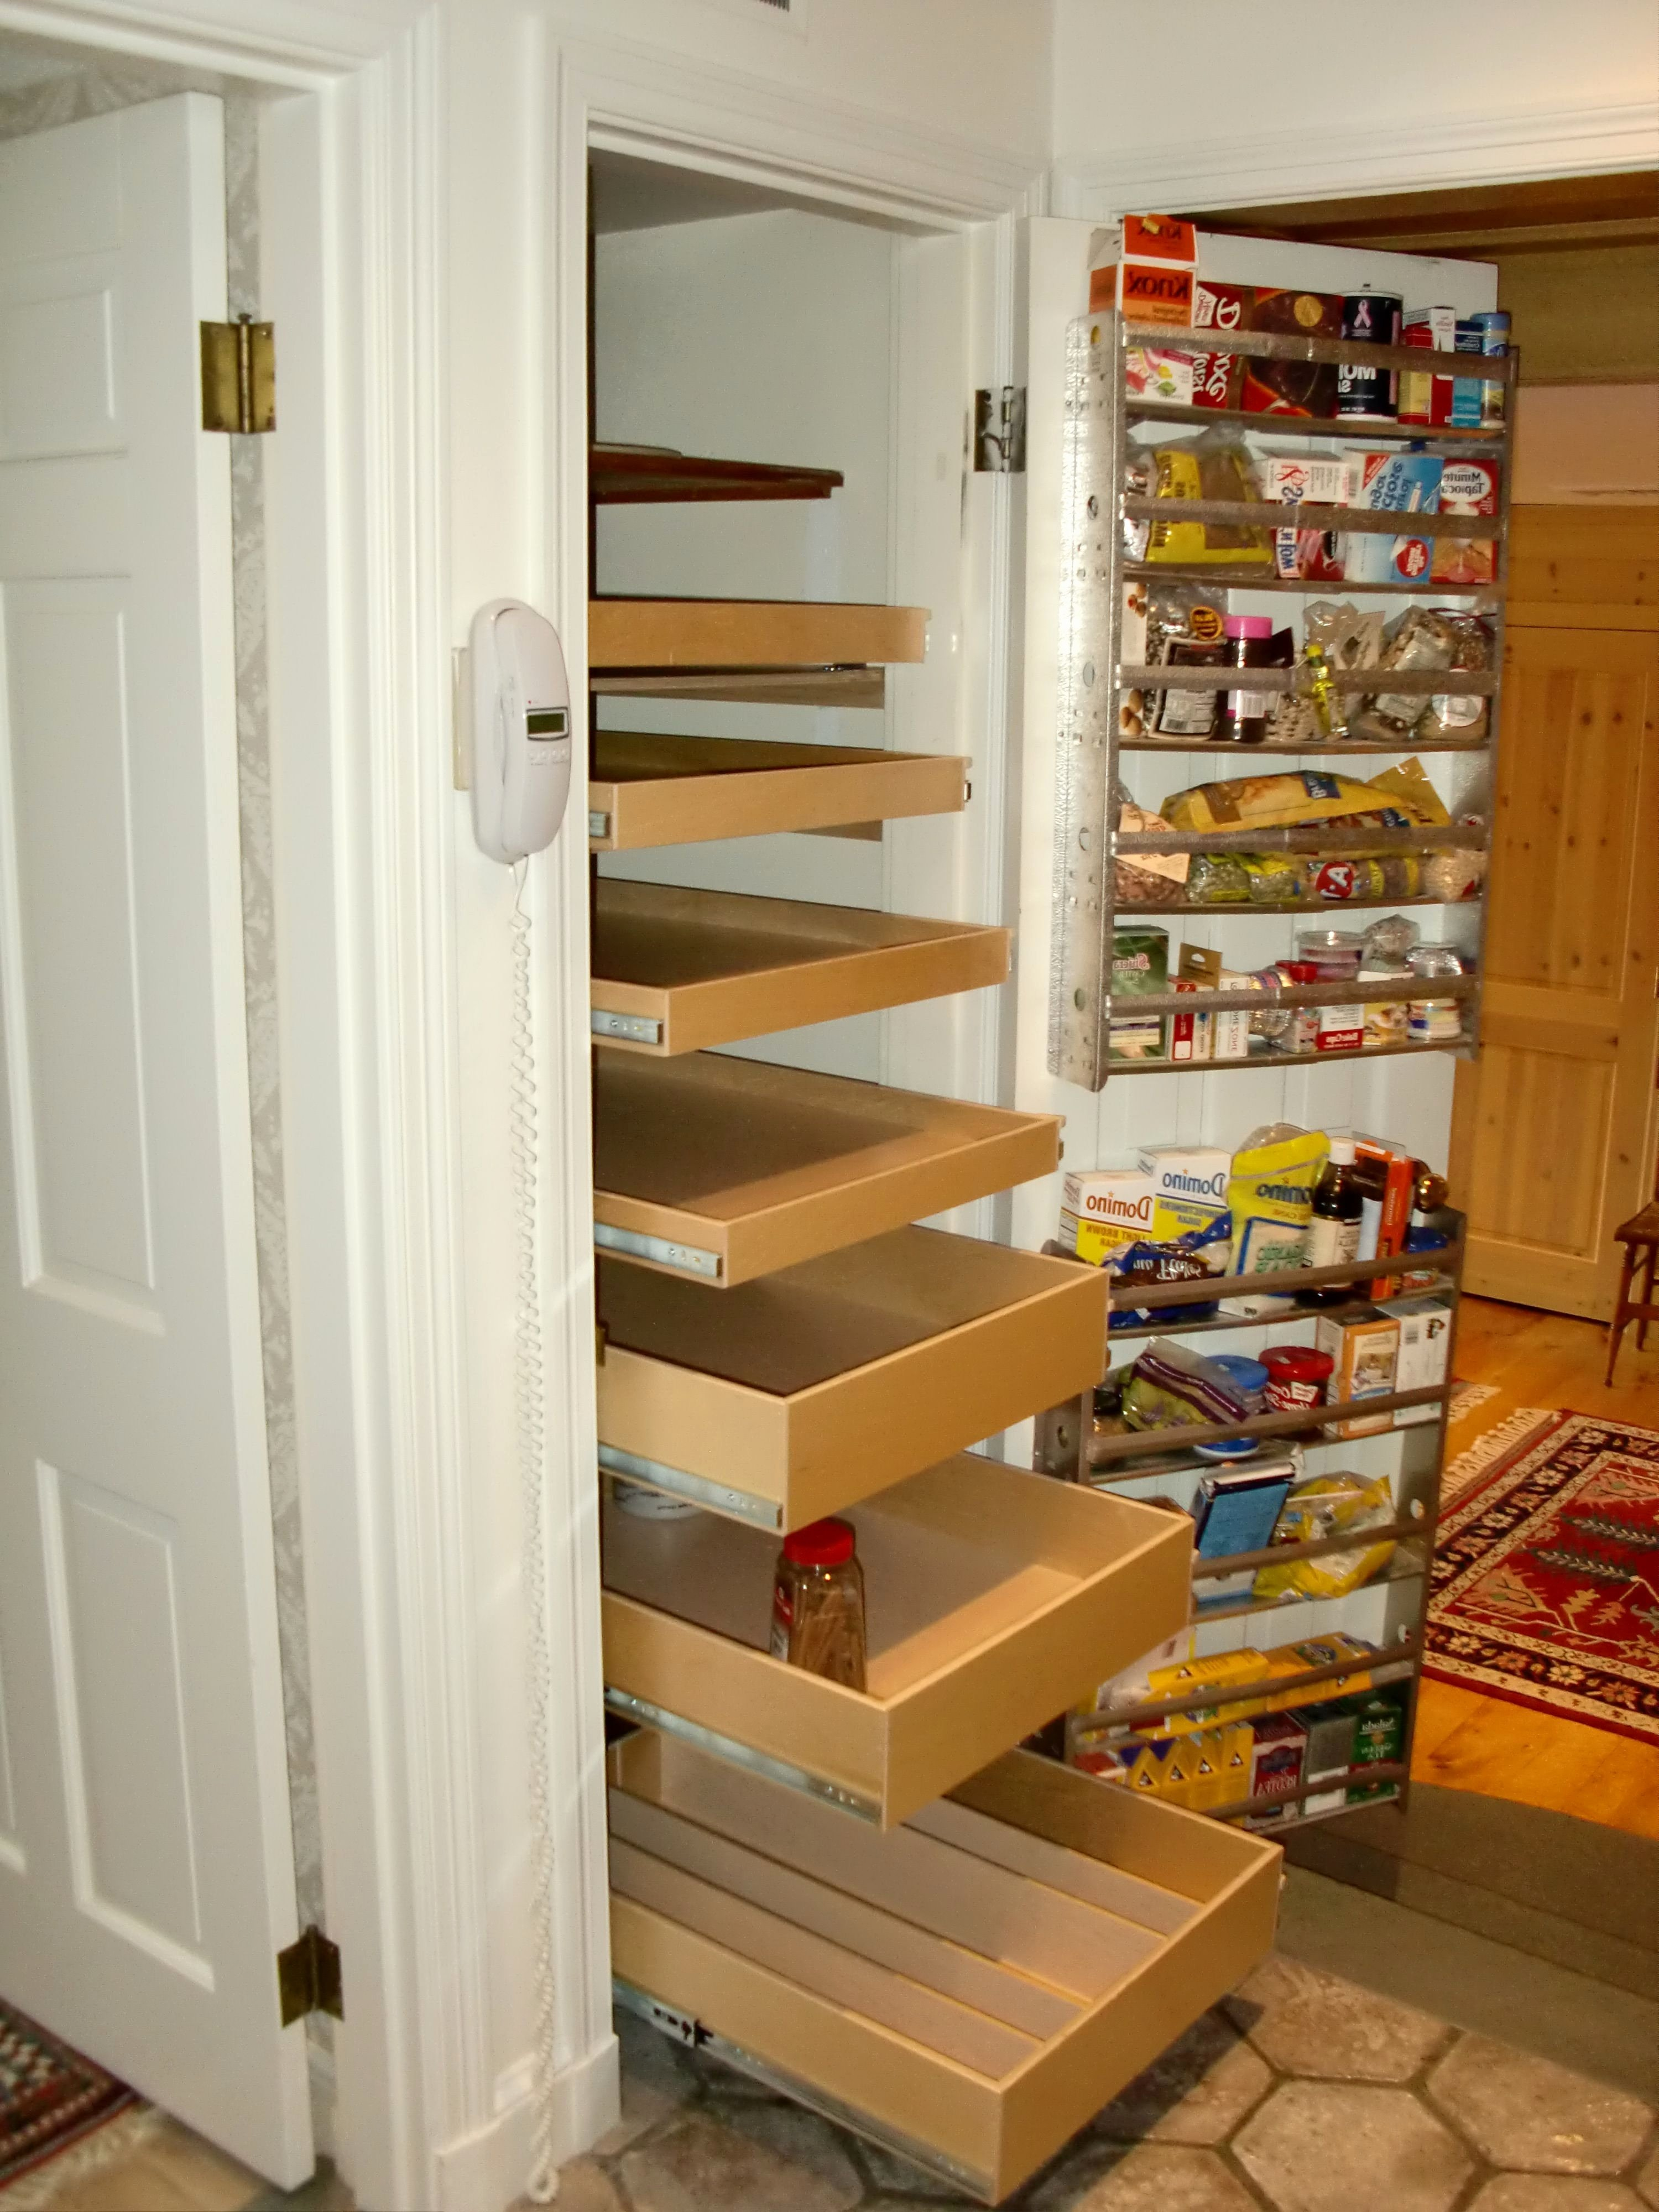 10 Wonderful Pantry Ideas For Small Kitchen small kitchen pantry ideas best of food pantry ideas for small 2020